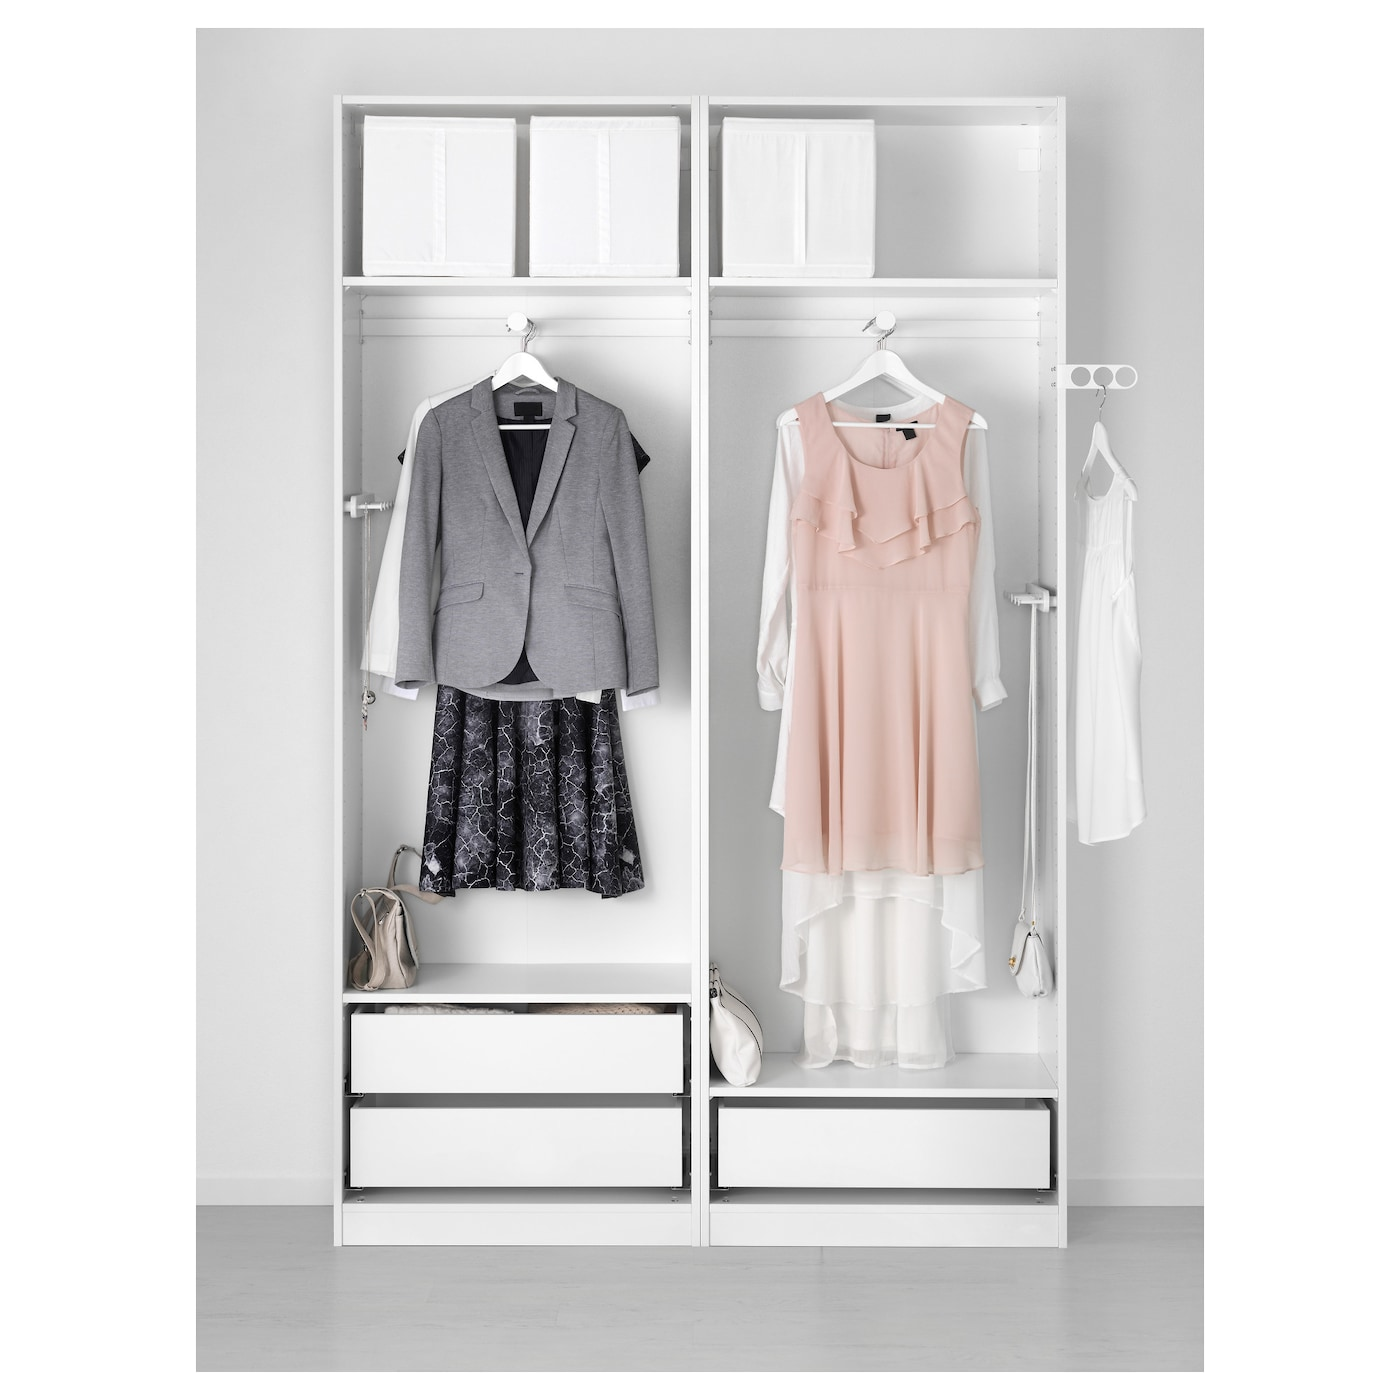 pax armoire penderie blanc auli miroir 150 x 44 x 236 cm. Black Bedroom Furniture Sets. Home Design Ideas